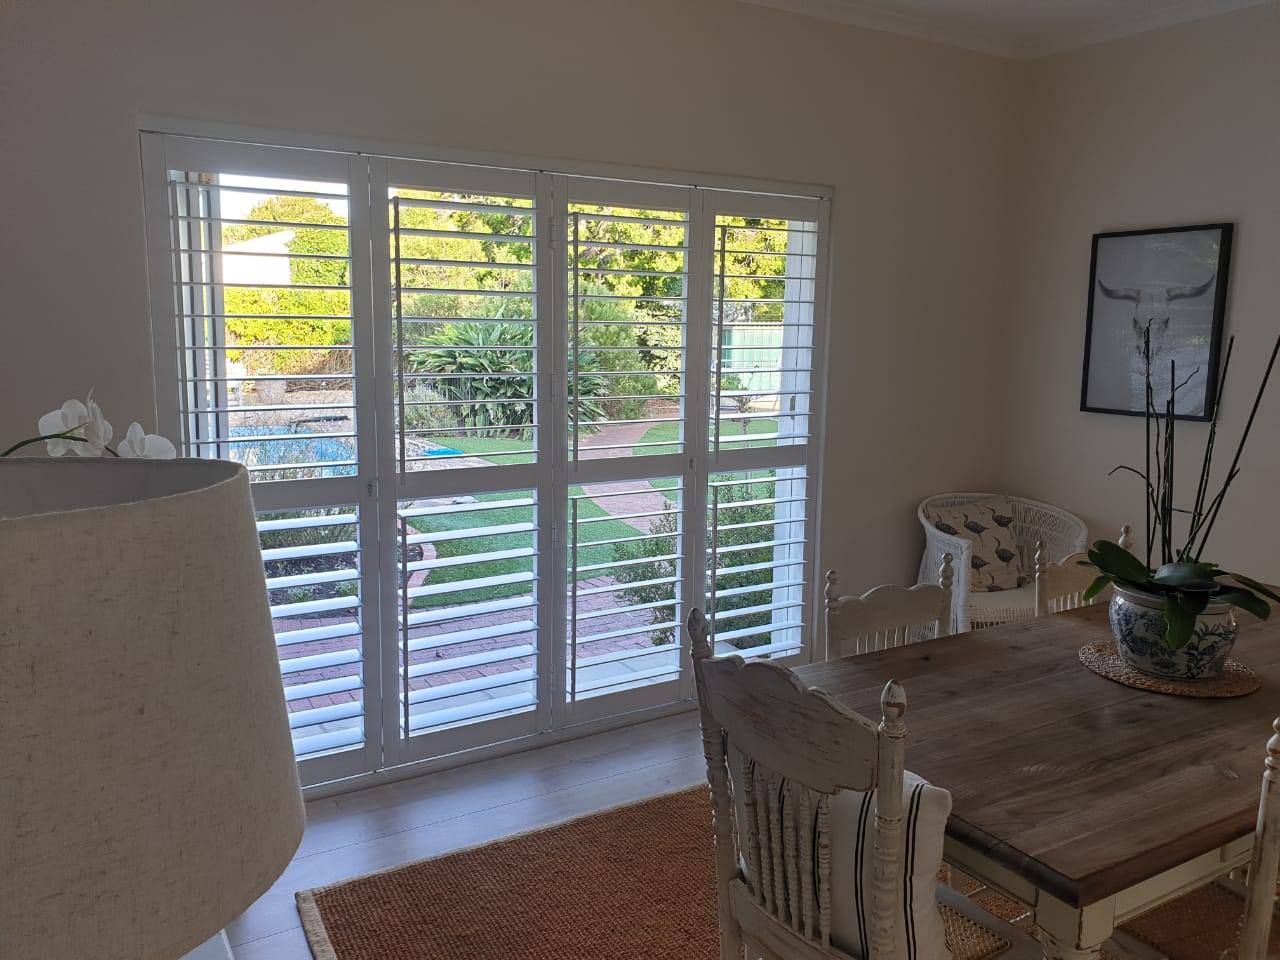 shutters - window shutters door shutters cape town - tlc blinds 8